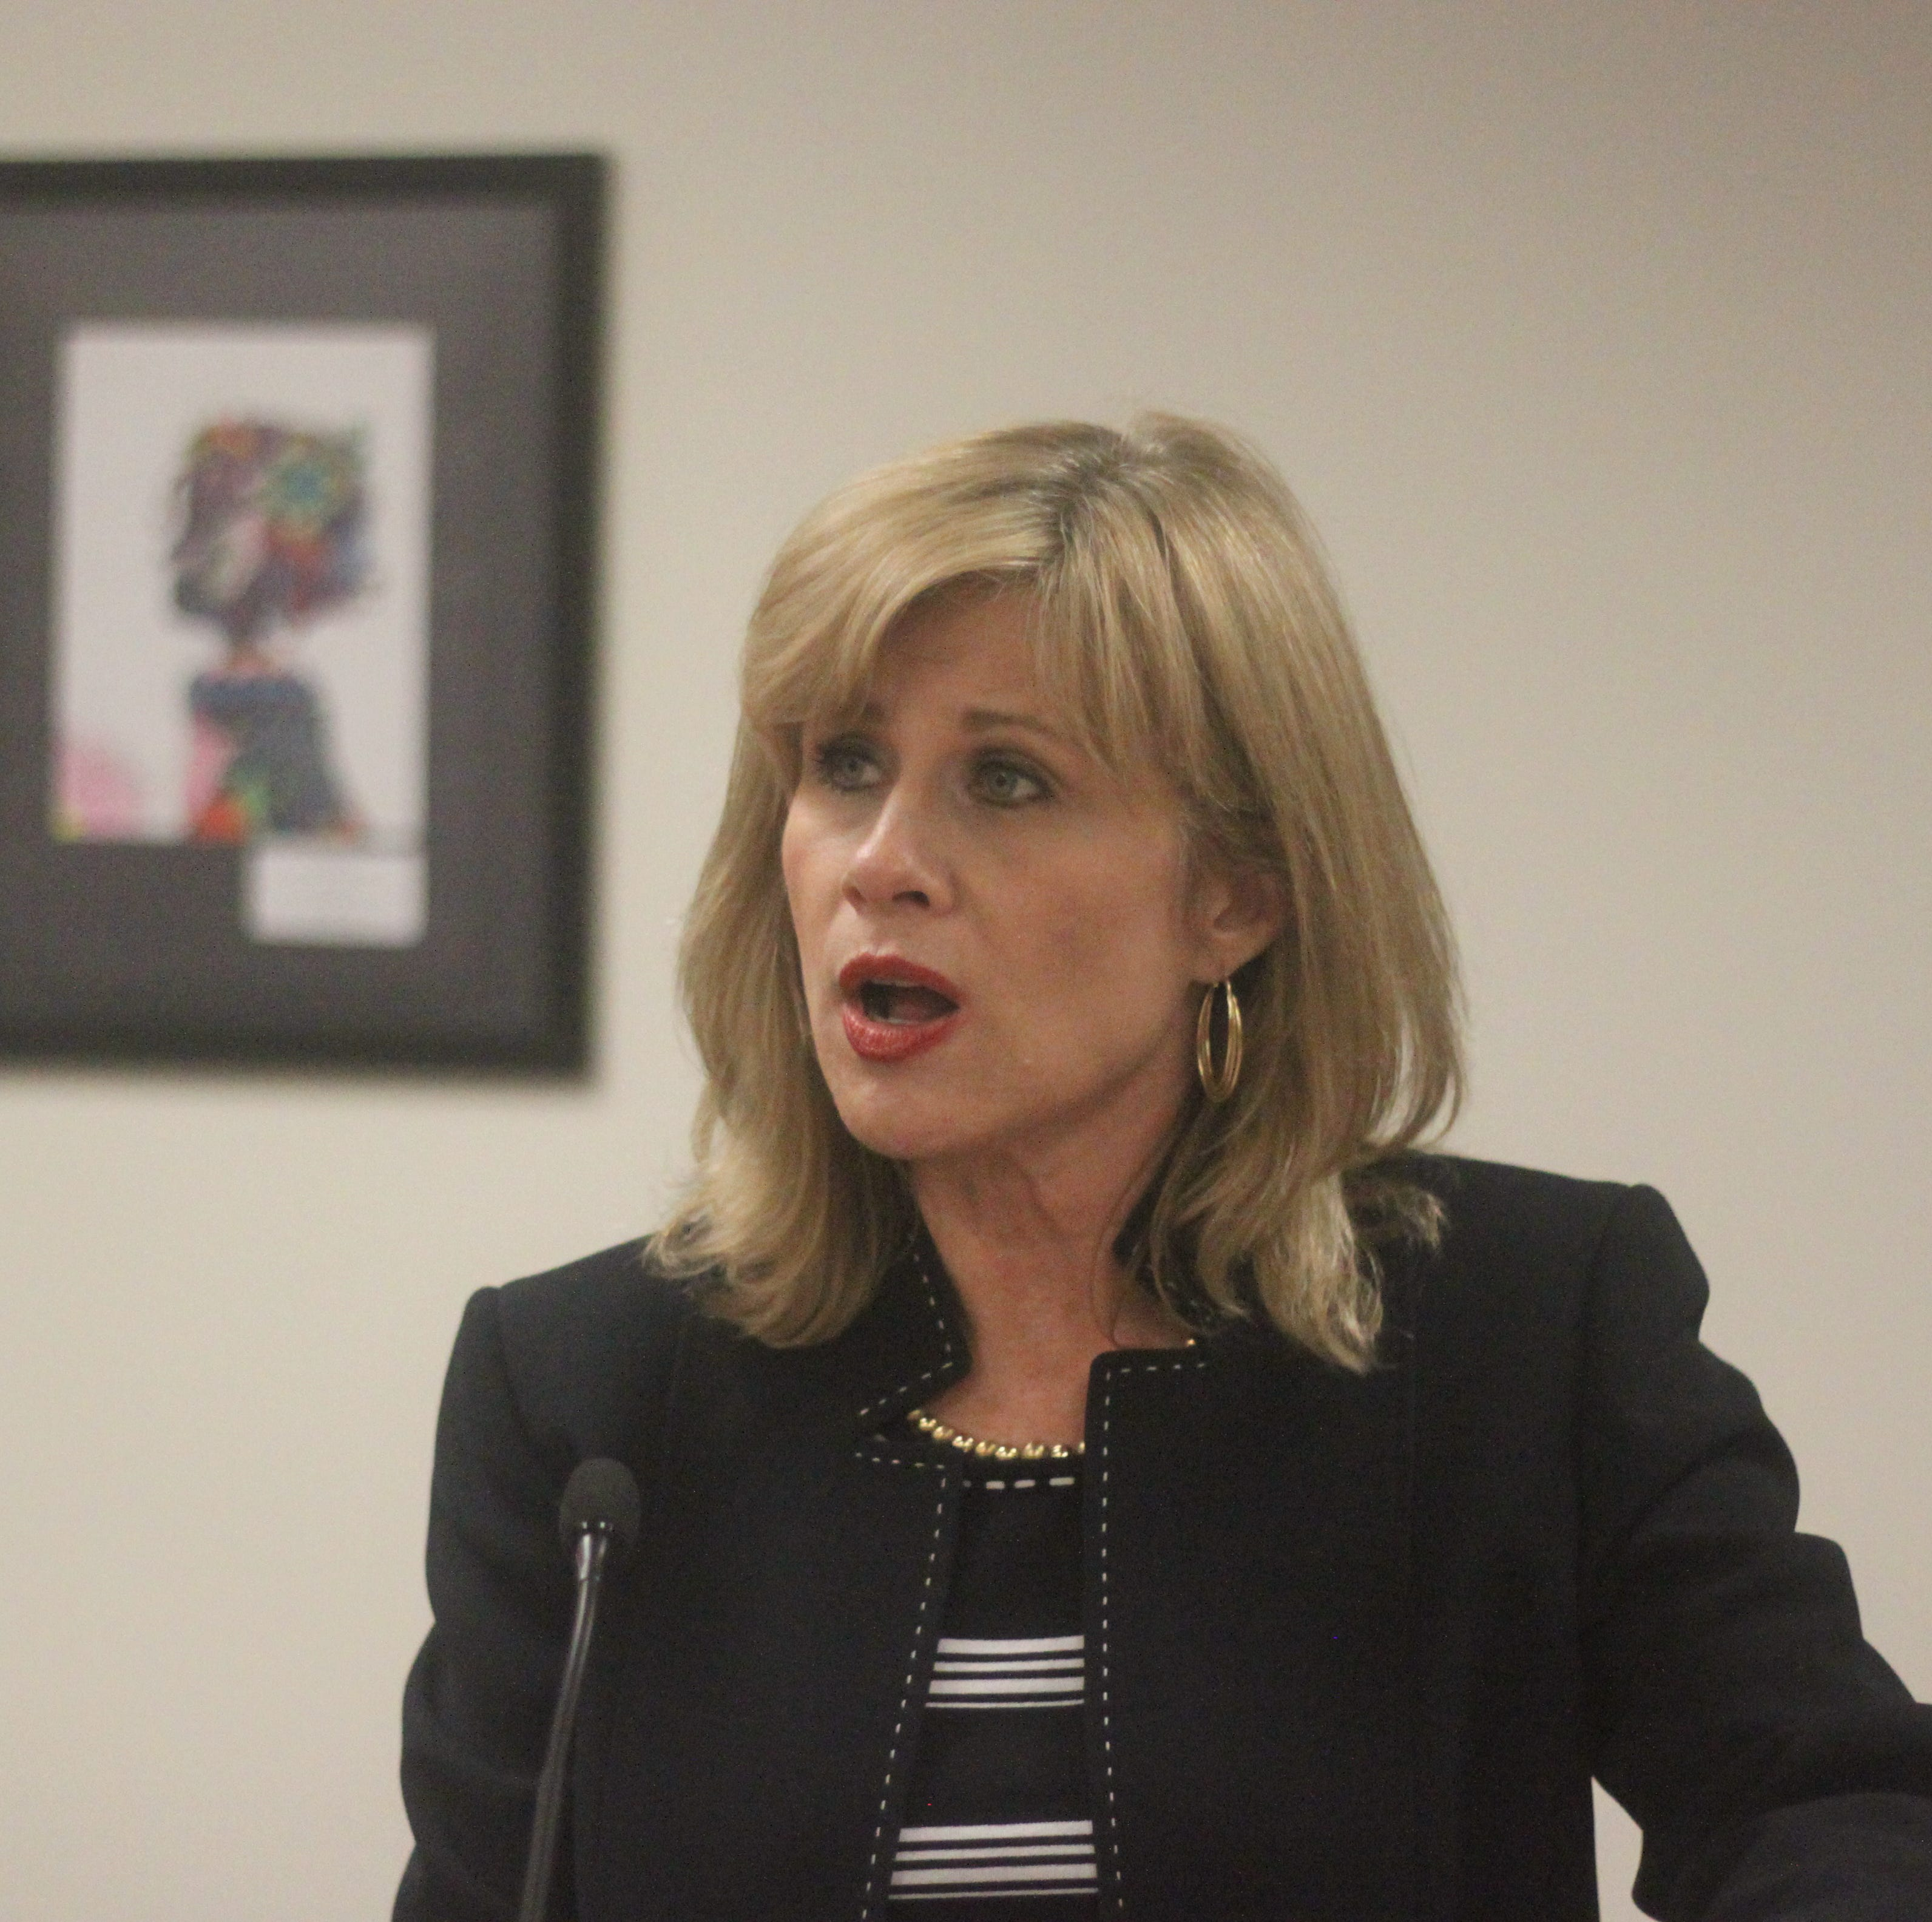 Judge will hear motion to dismiss defamation lawsuit against Carlsbad School District